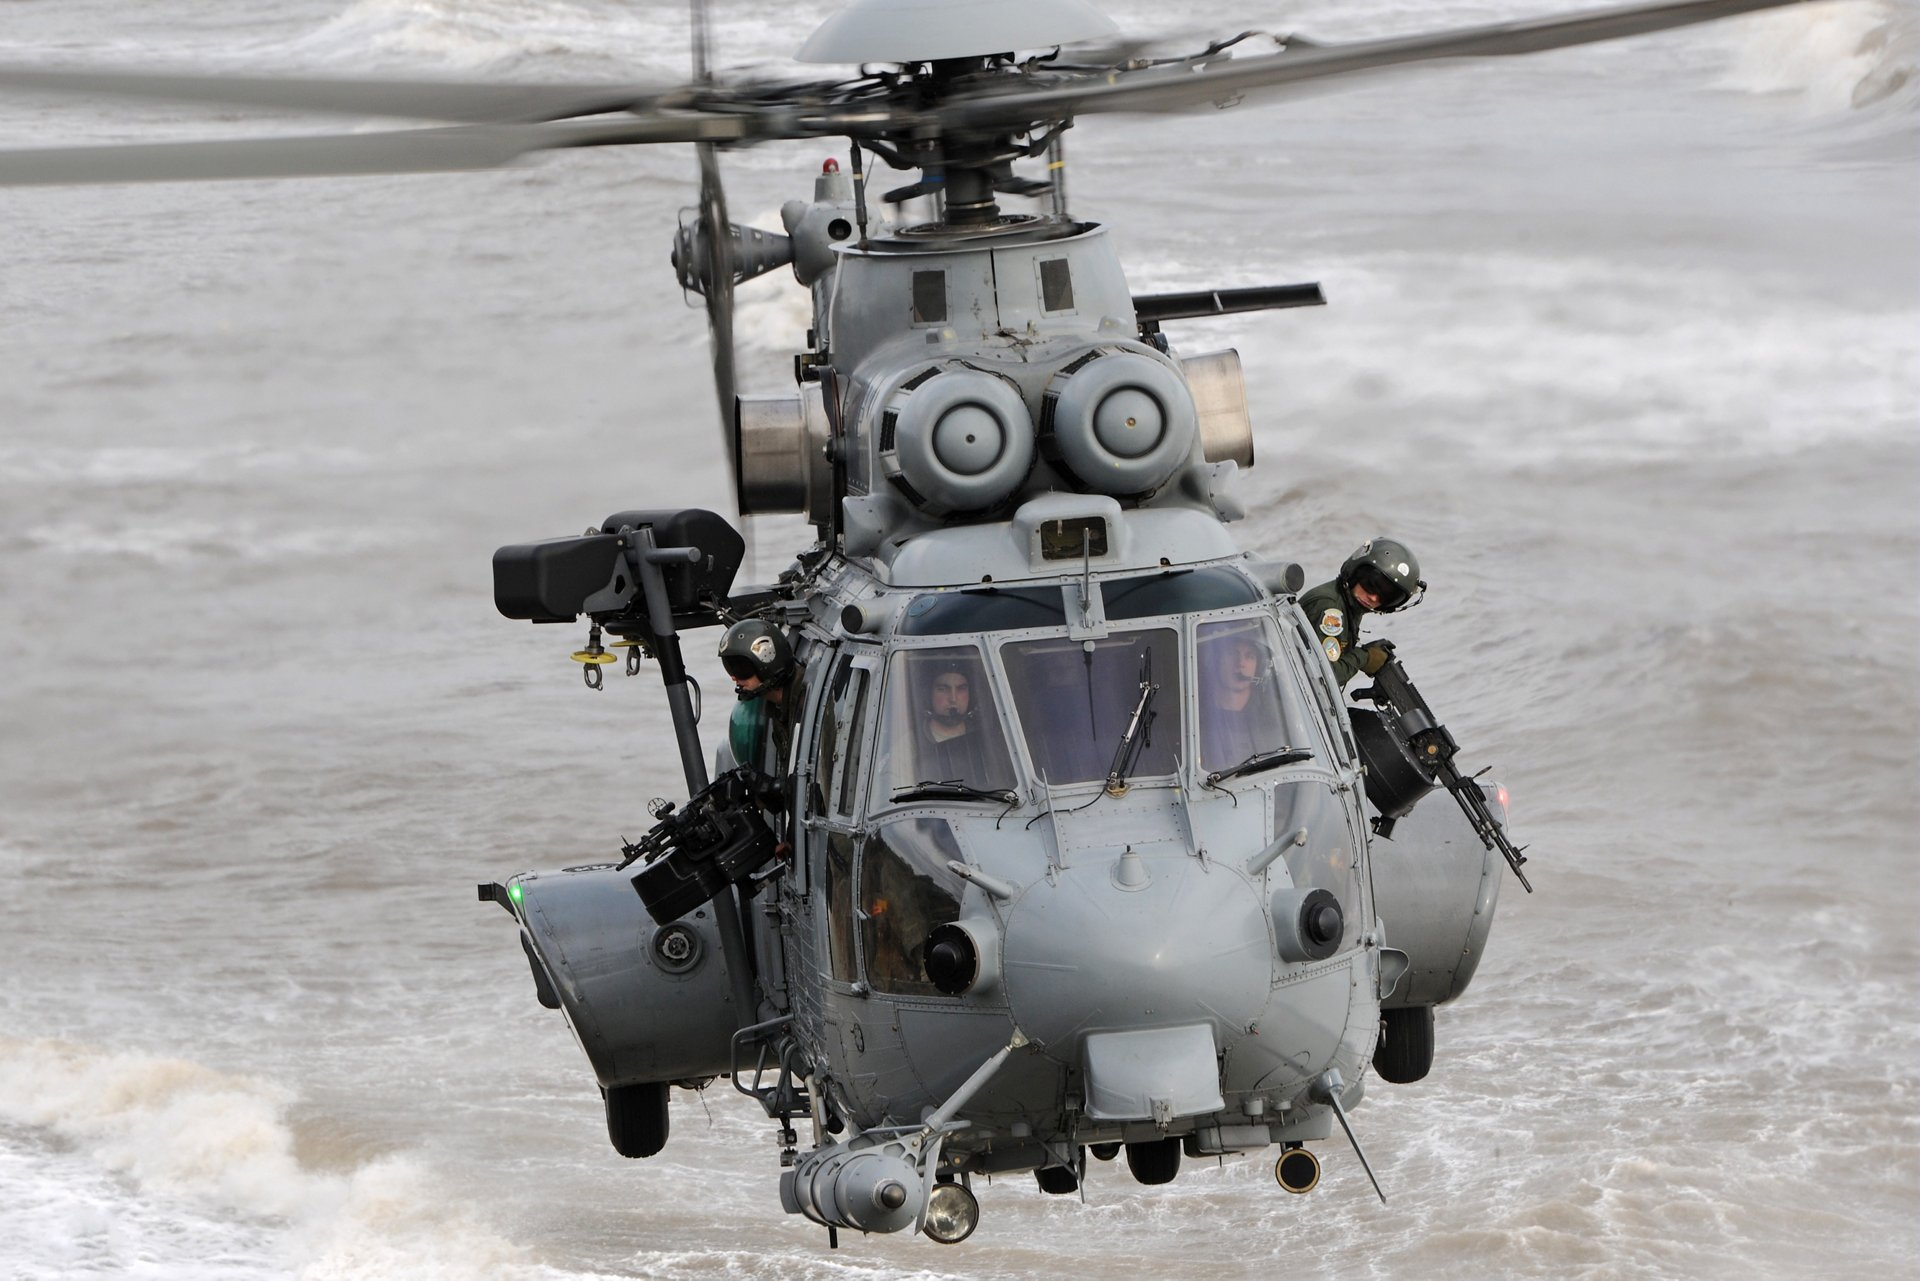 As the latest member of Airbus' military Super Puma/Cougar family, the H225M has proven its reliability and durability in combat conditions and crisis areas